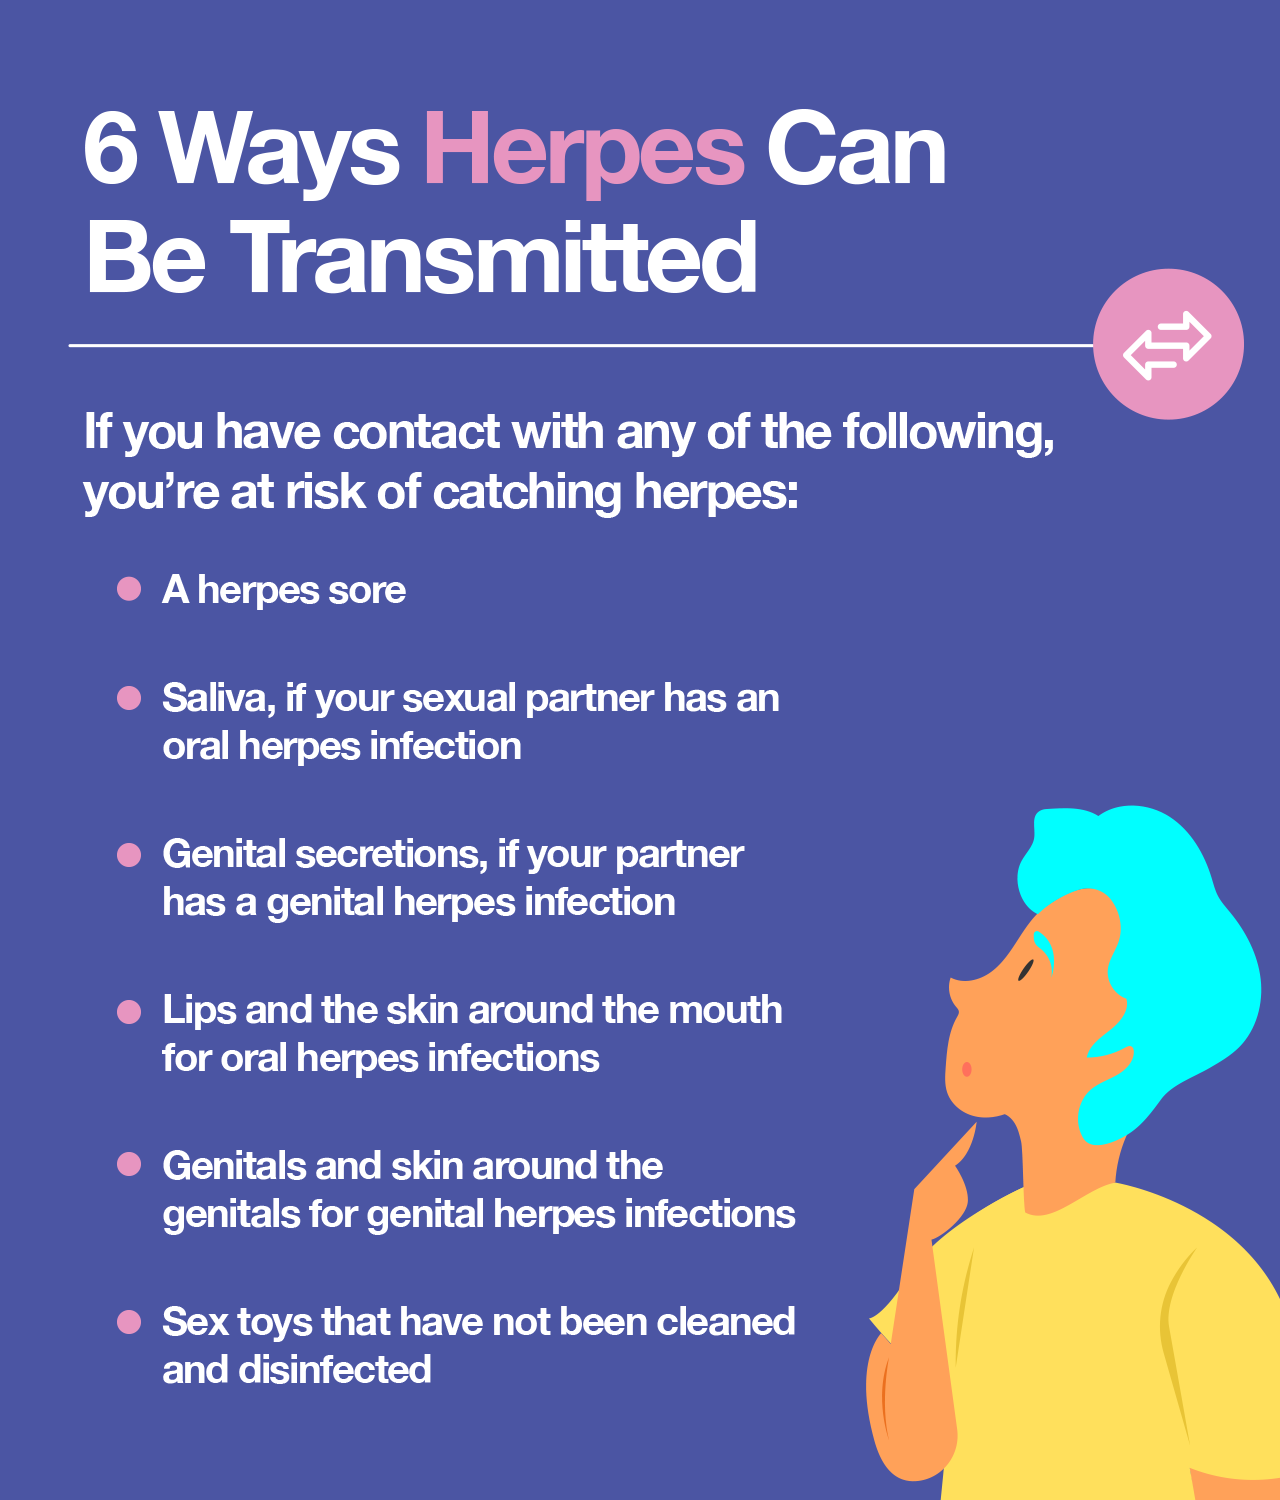 Is herpes curable? Get the facts.